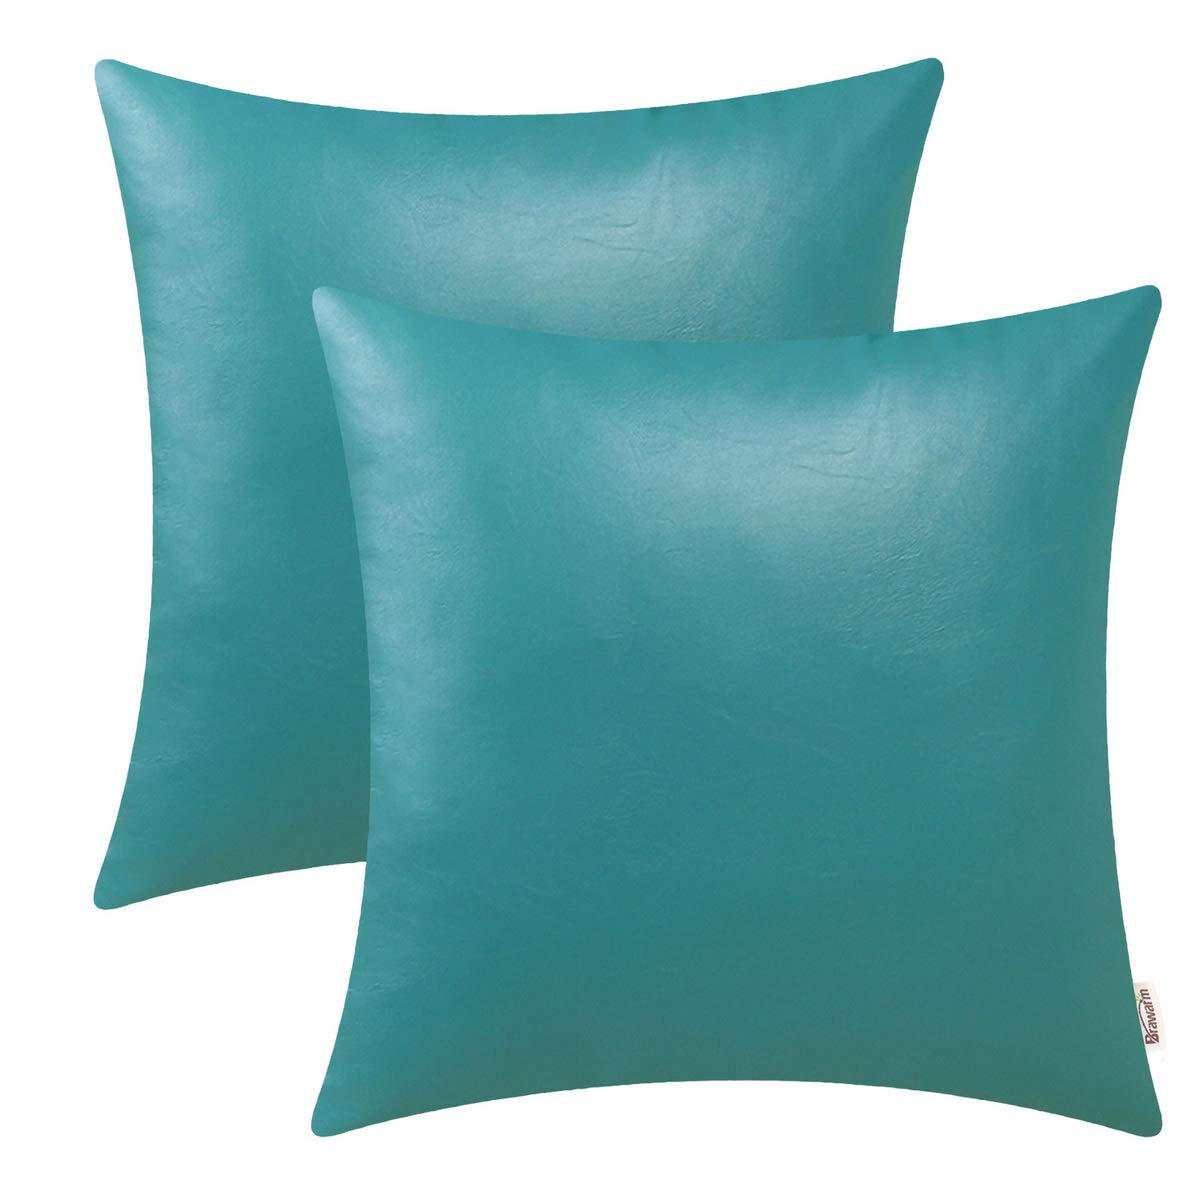 BRAWARM Pack of 2 Cozy Throw Pillow Covers Cases for Couch Sofa Home Decoration Solid Dyed Soft Faux Leather Both Sides 20 X 20 Inches Teal